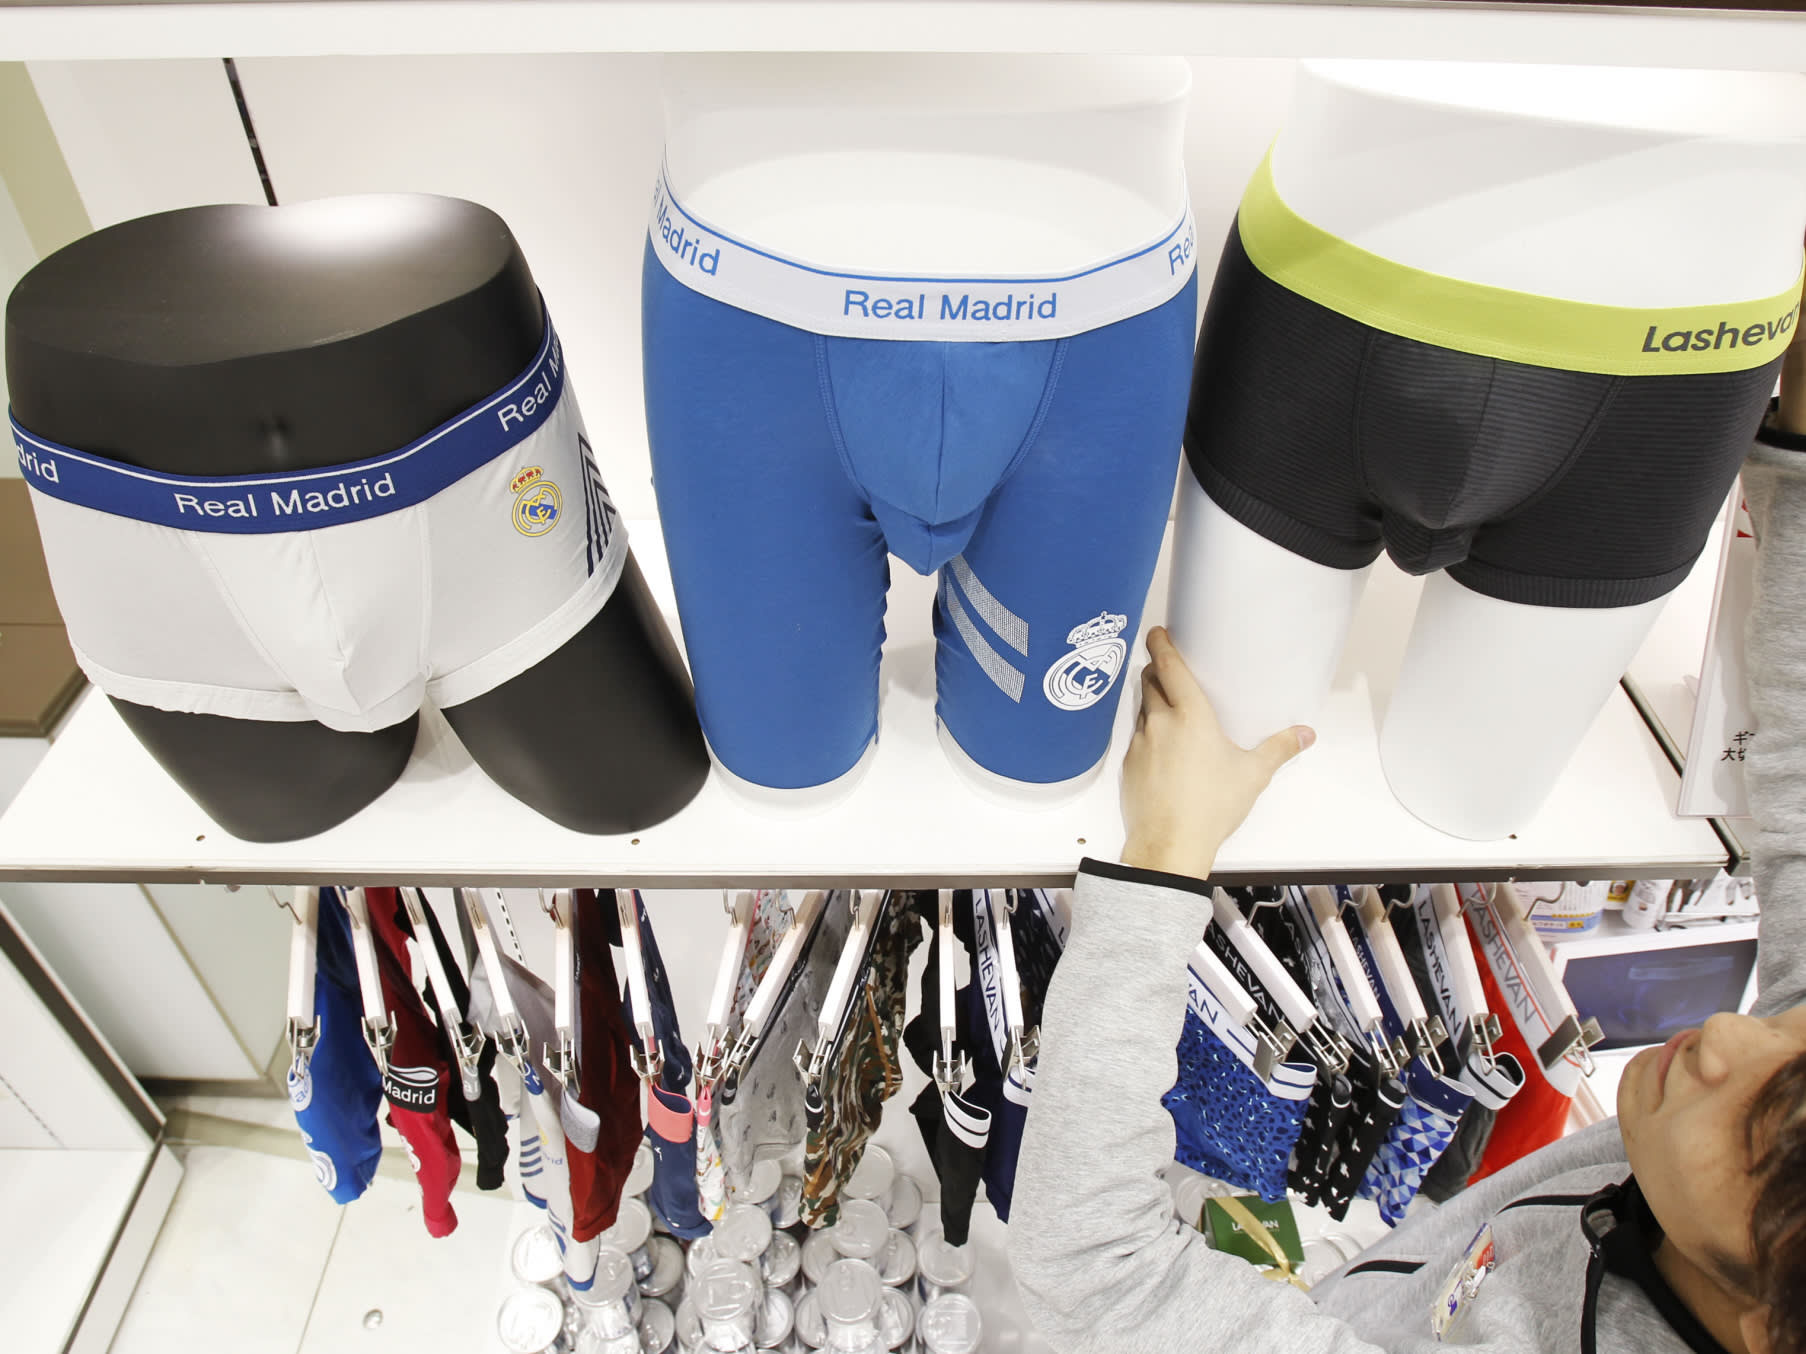 Luxury boxer briefs spruce up life and limb